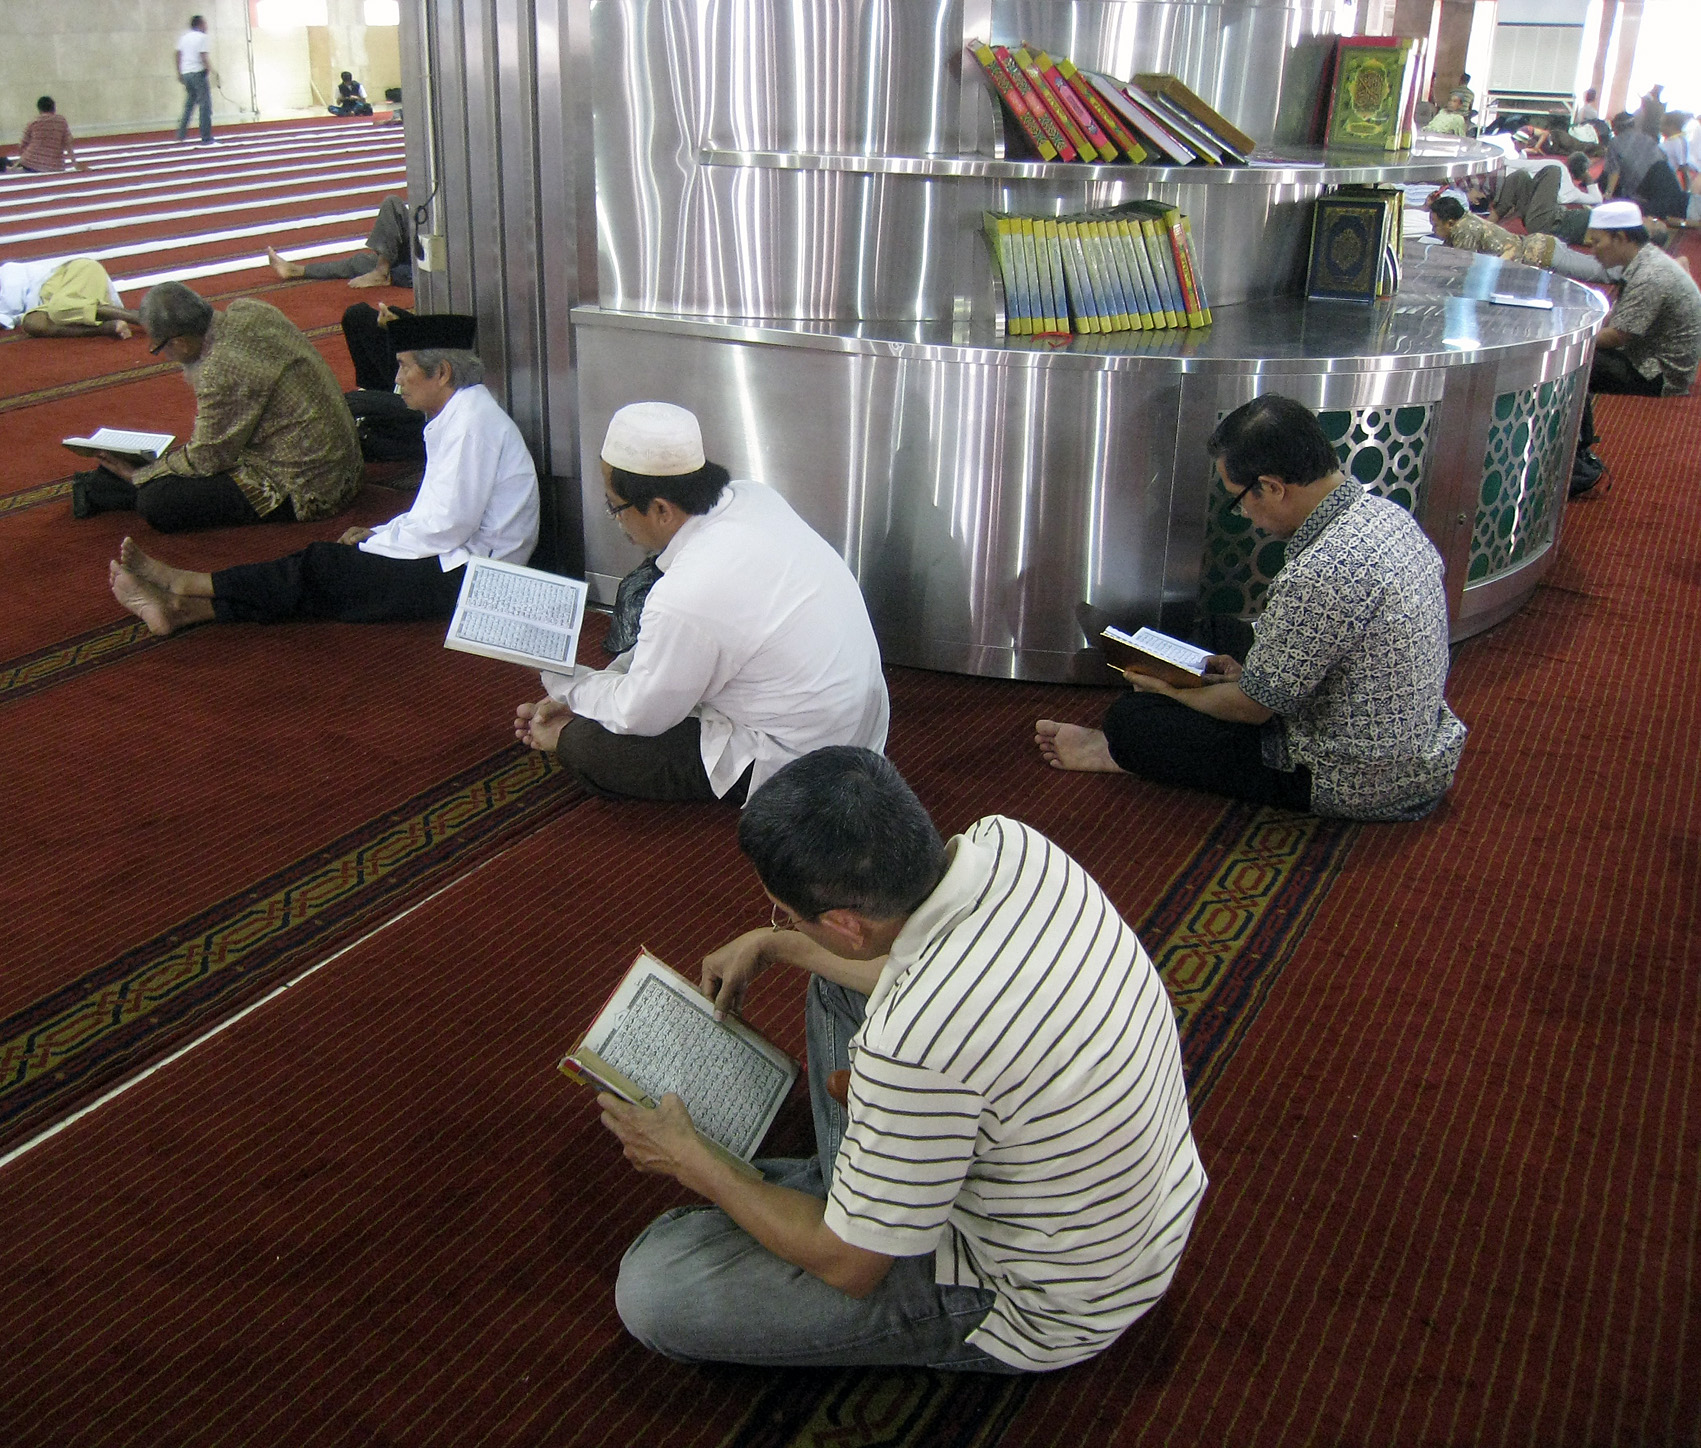 Indonesian muslims reciting Al Quran after shalat (prayer). Istiqlal Mosque, Central Jakarta, Indonesia.